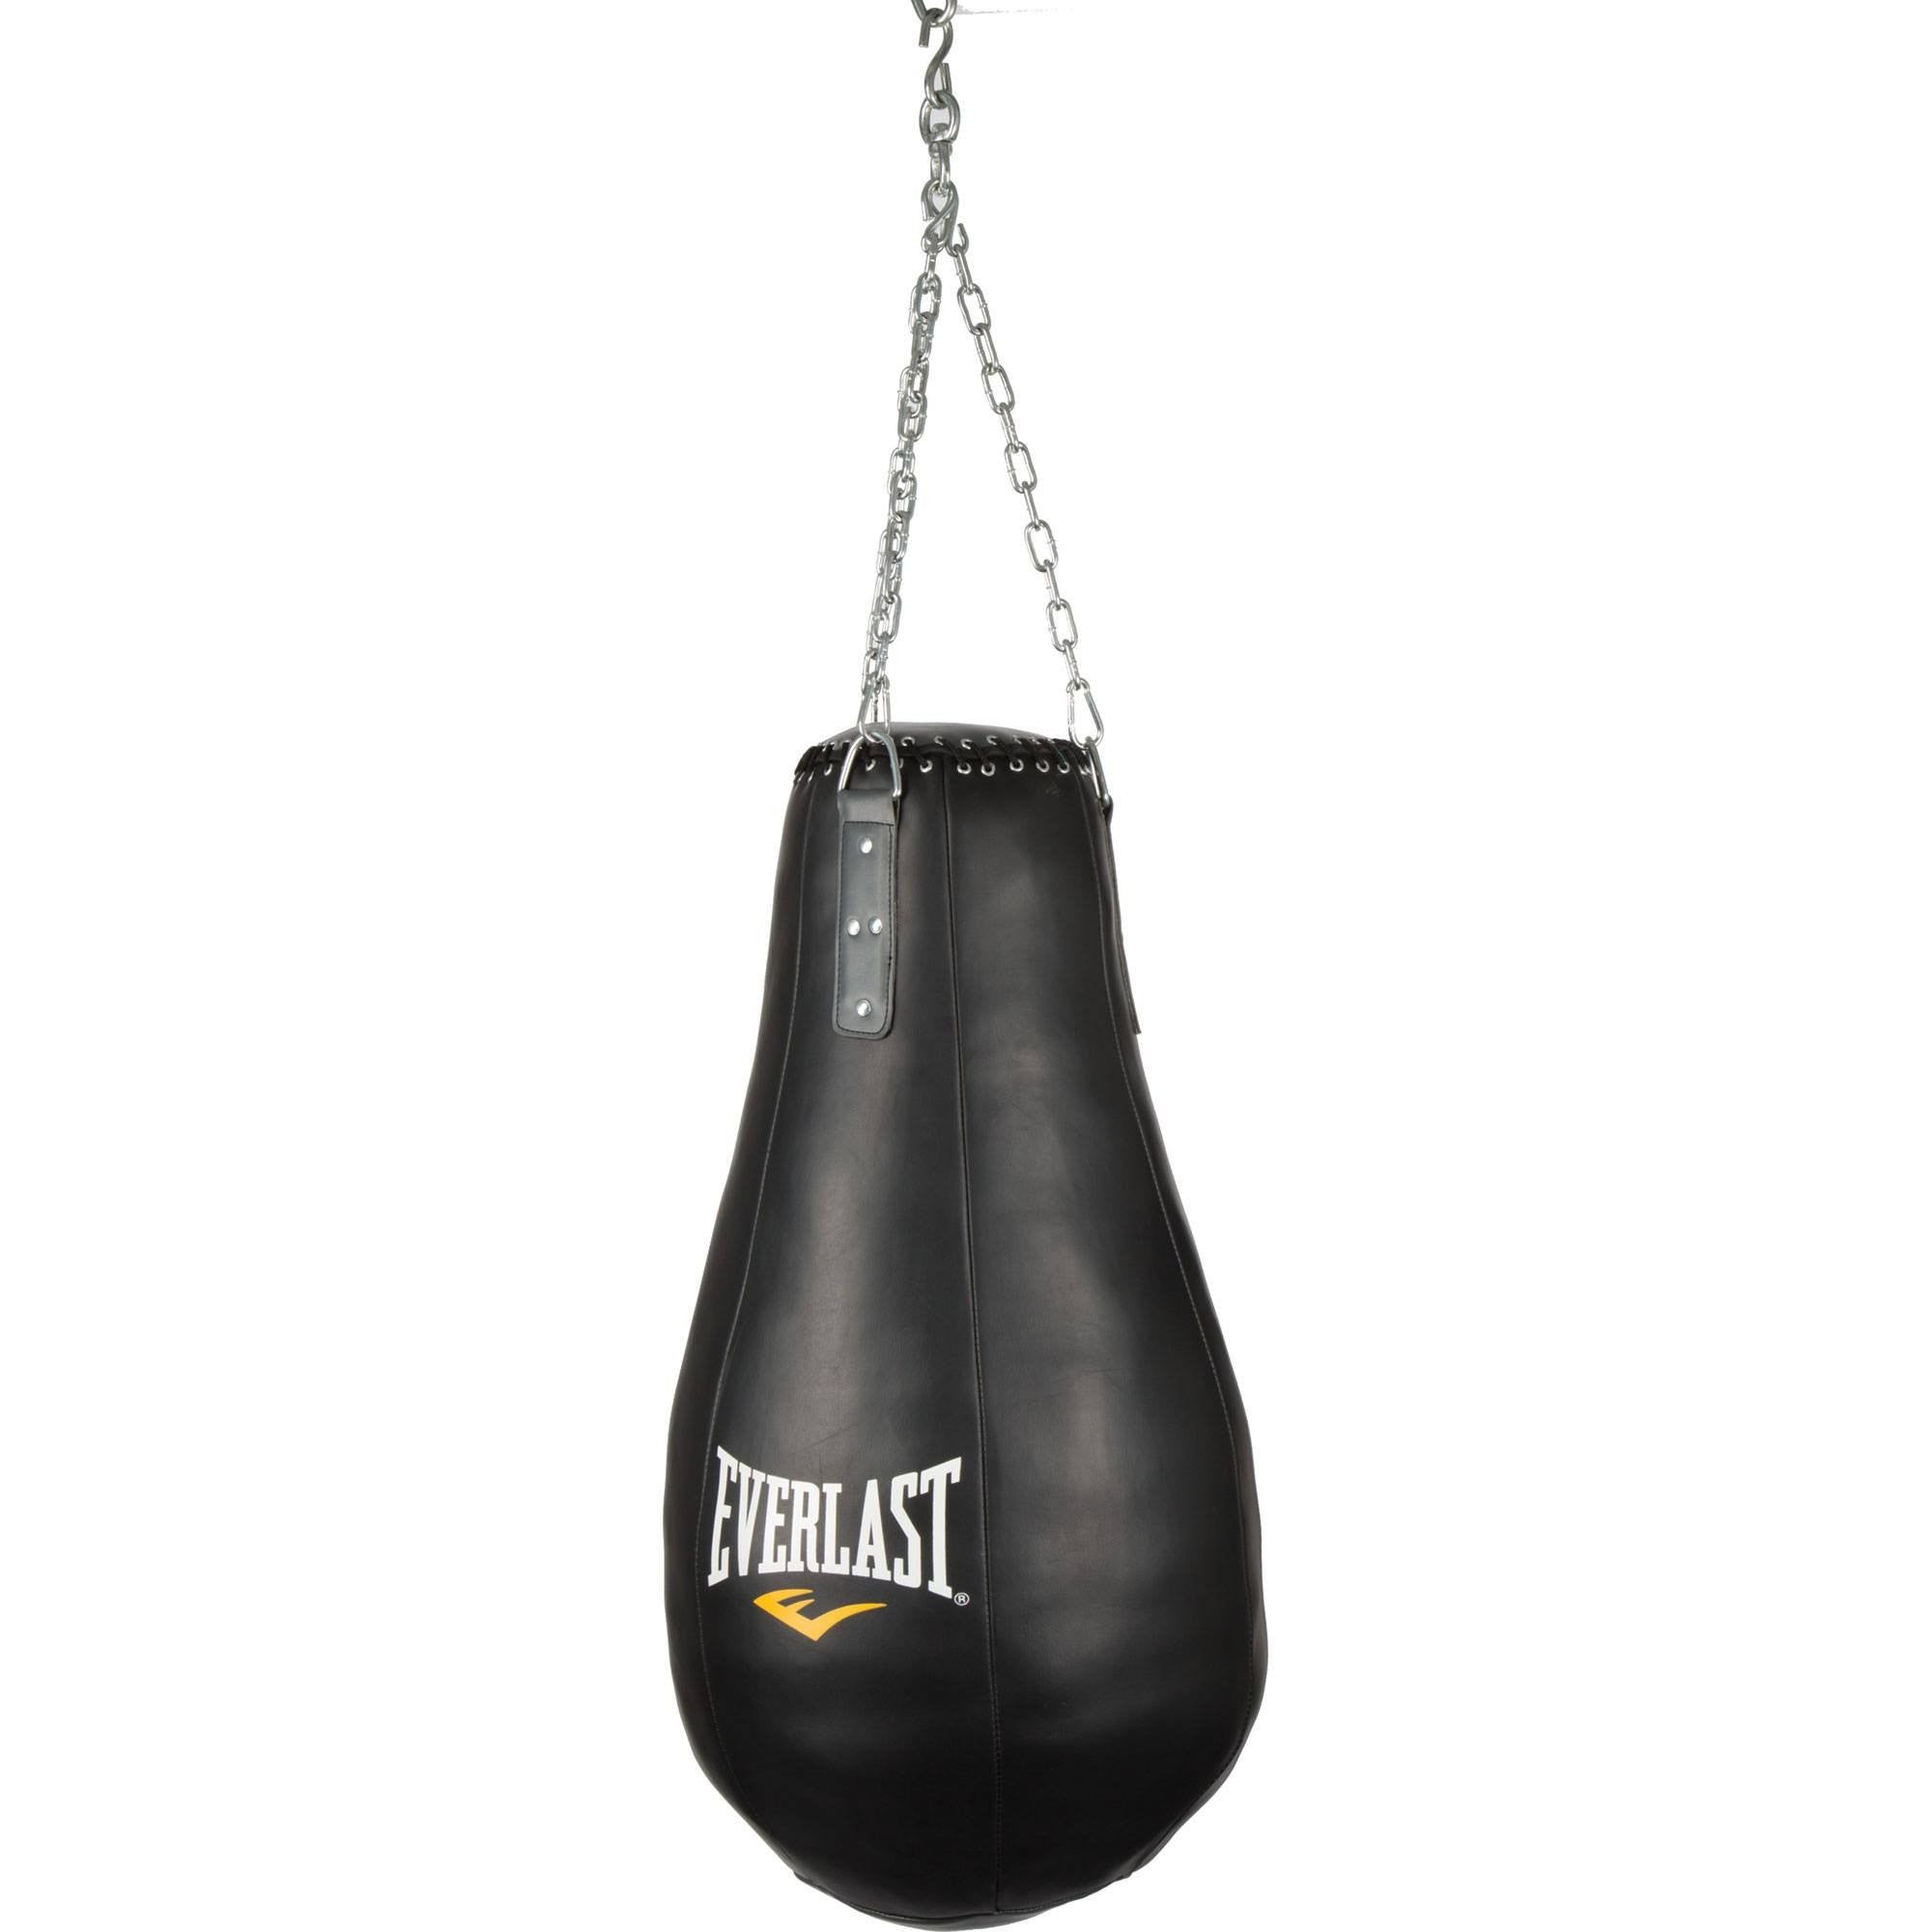 Everlast Tear Drop Heavy Bag by Everlast Canada